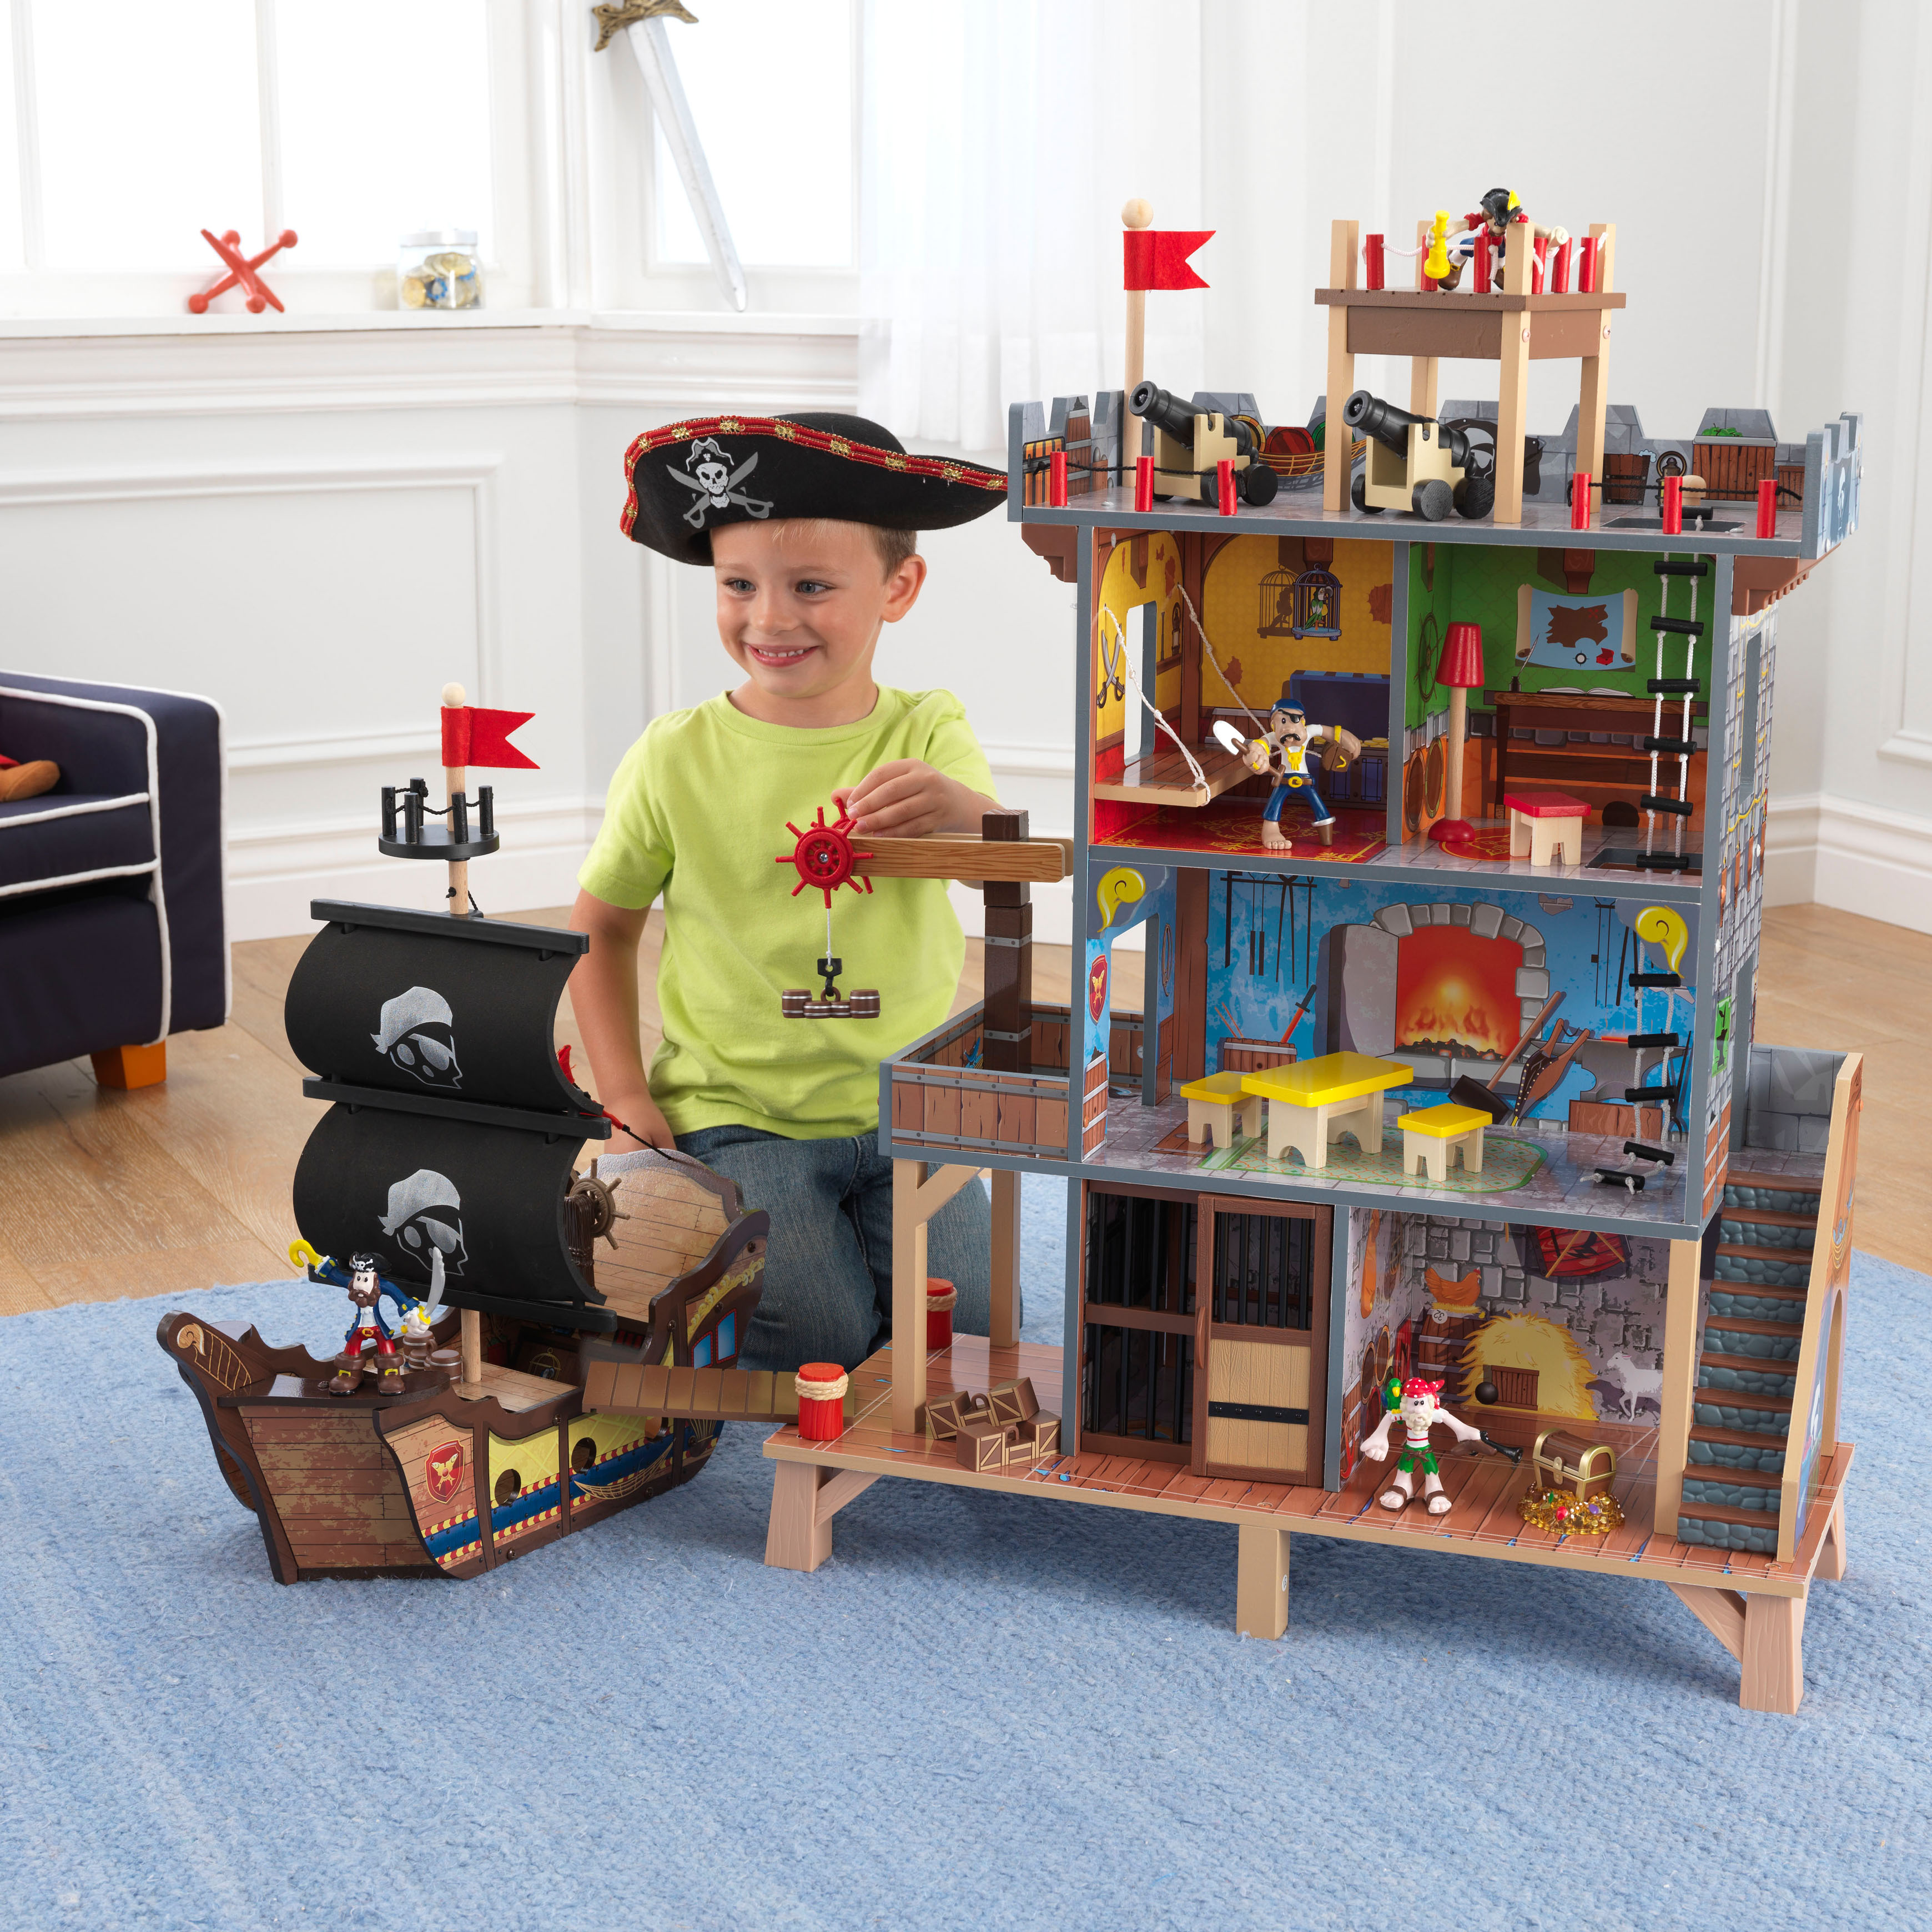 KidKraft Pirate's Cove Play Set with 17 Accessories Included by KidKraft